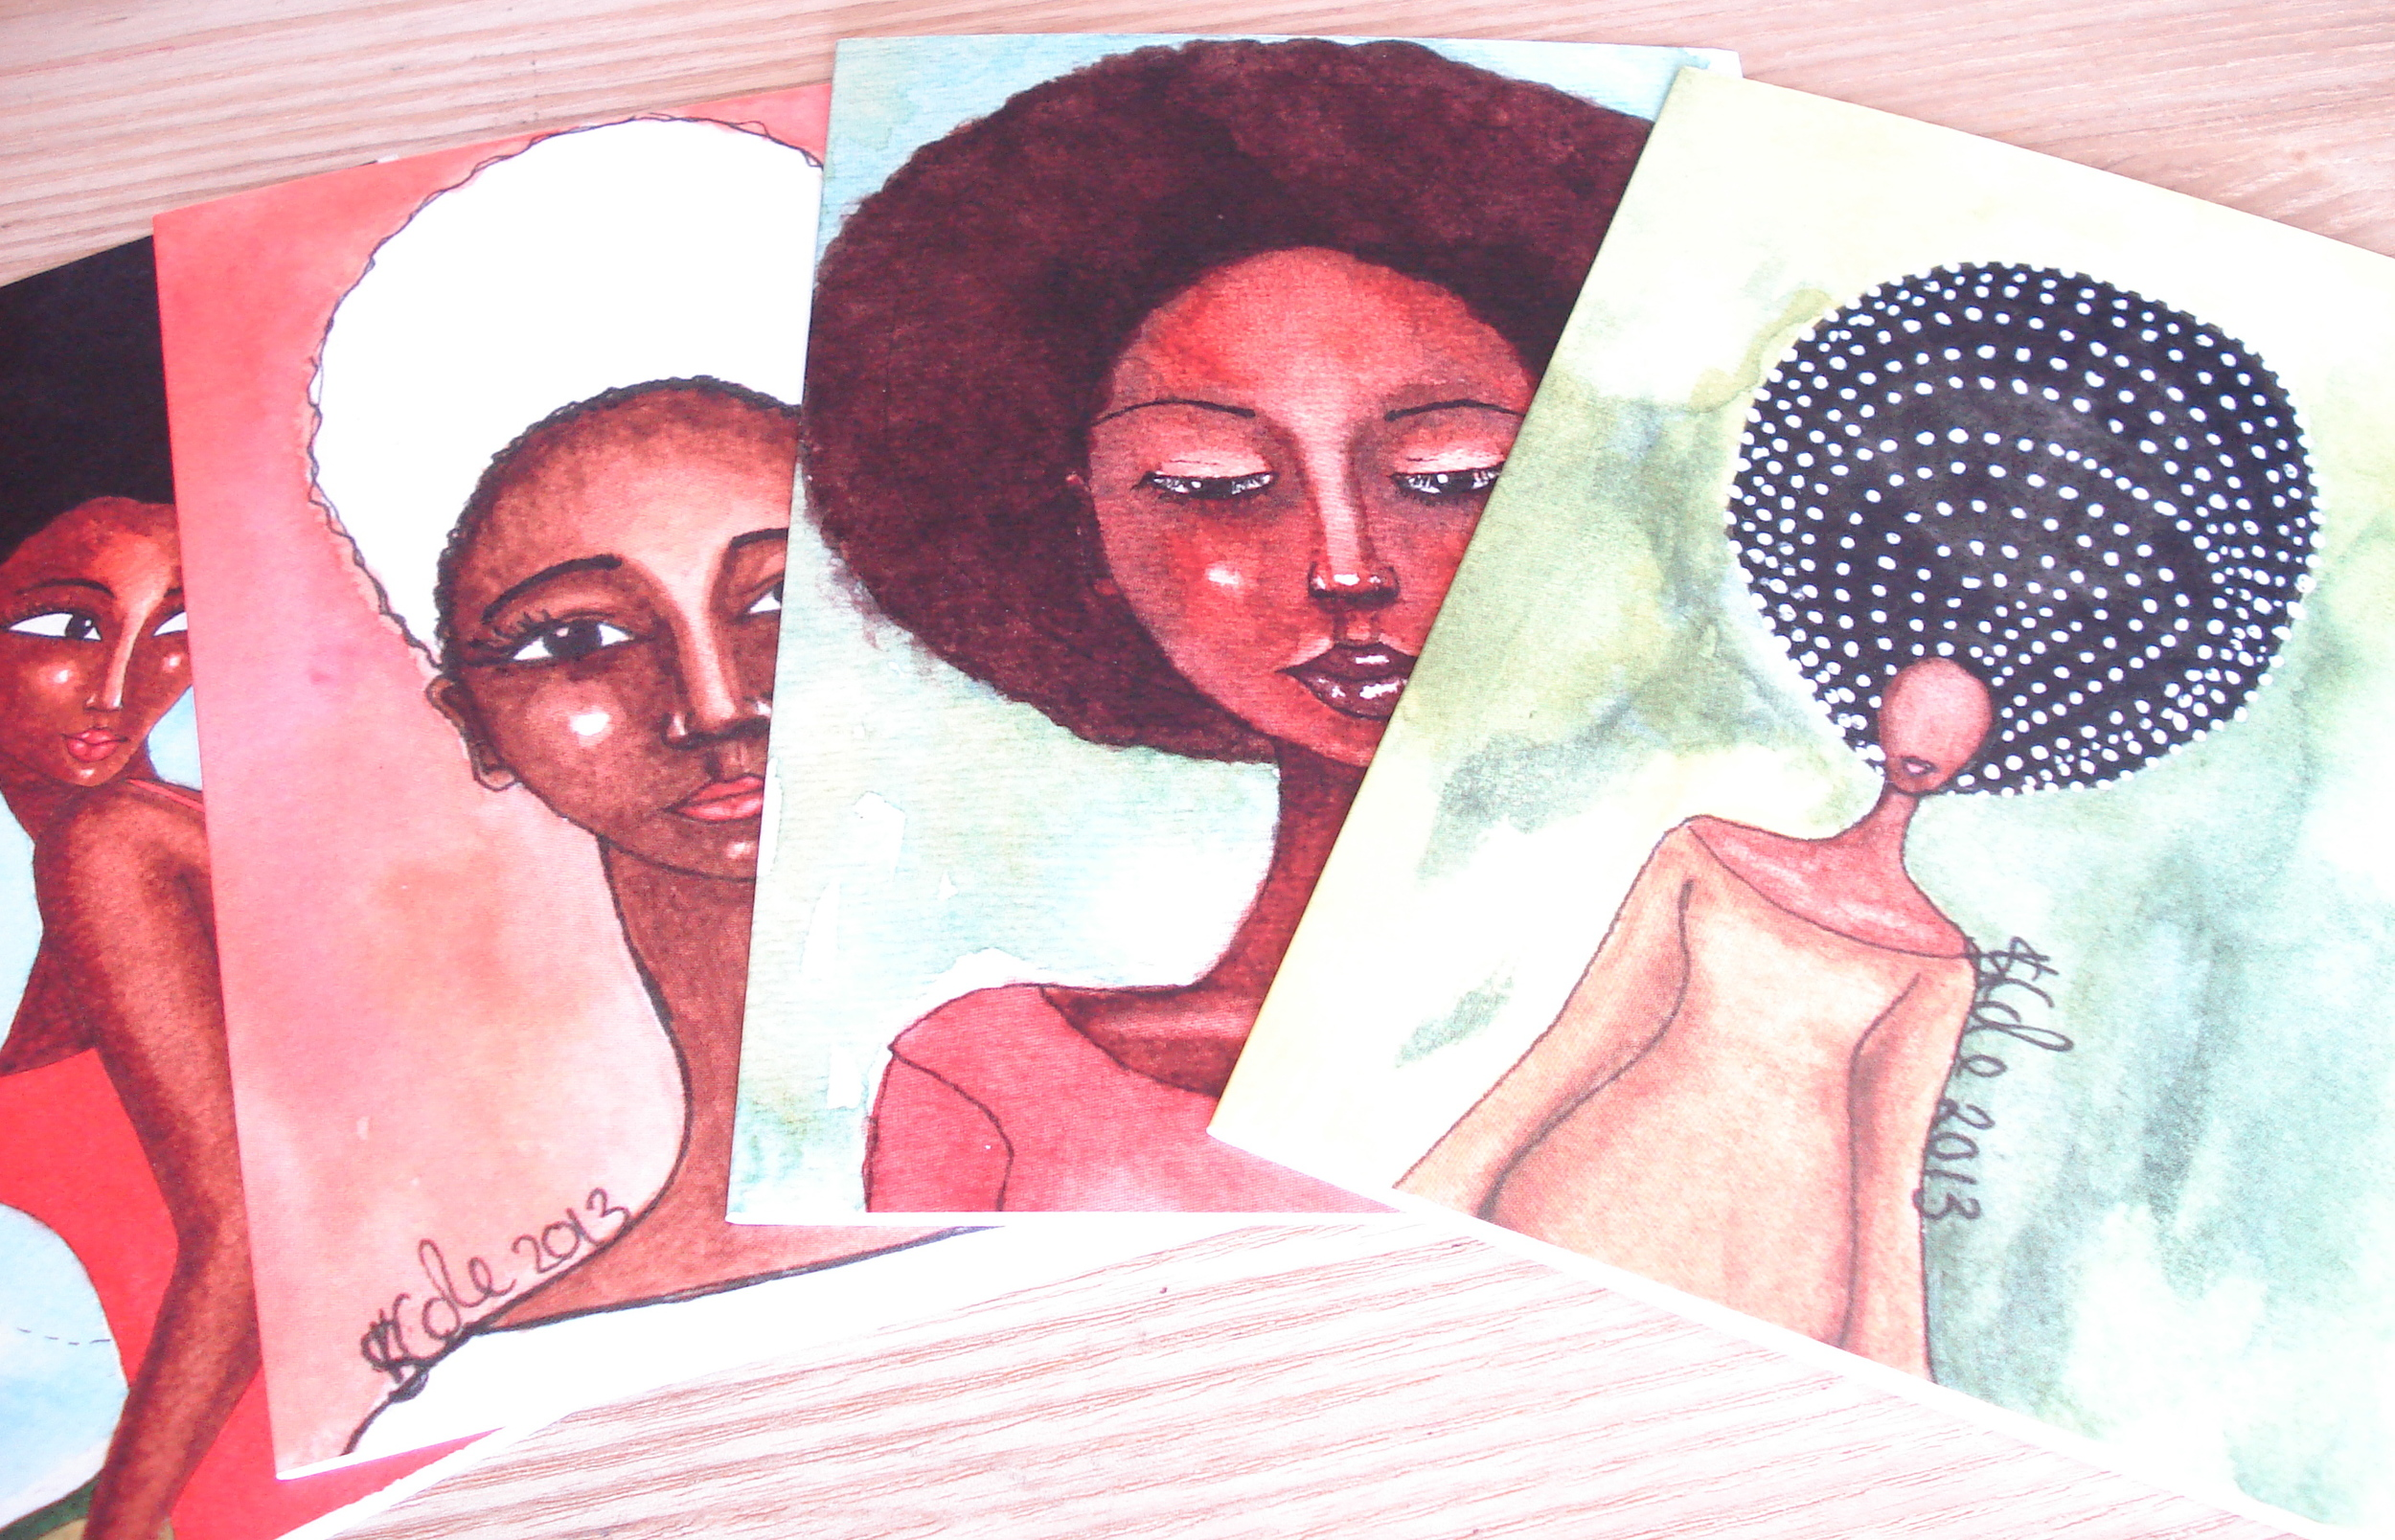 New Greeting Cards © Stacey-Ann Cole 2013